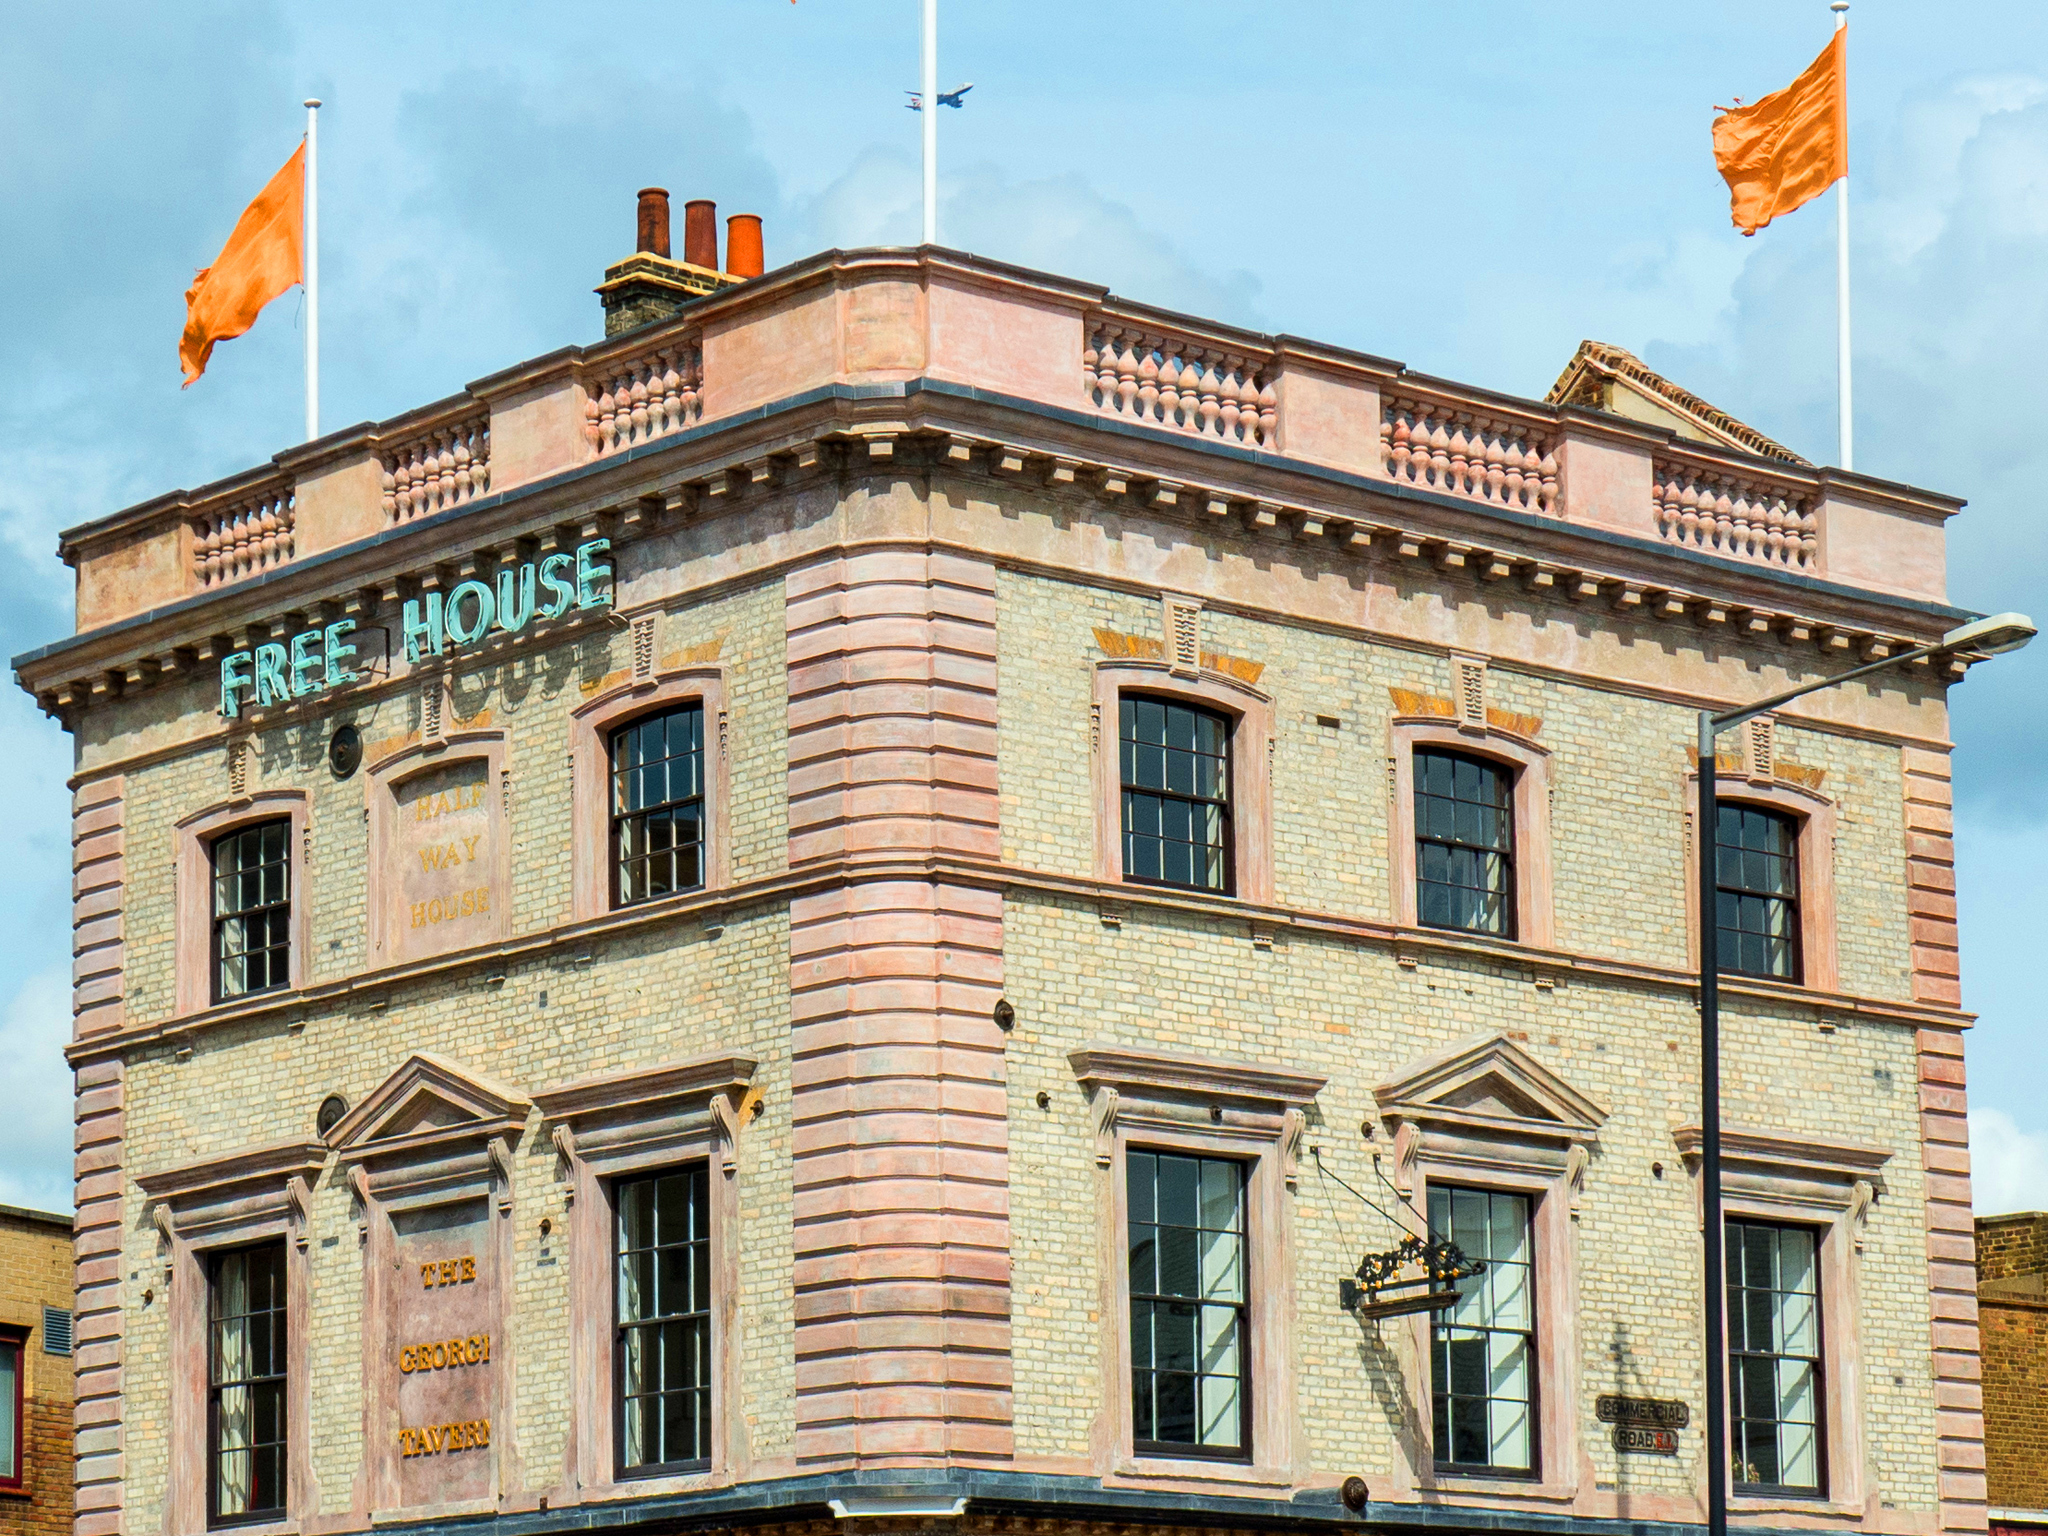 The George Tavern has won its appeal to stop a block of flats being built next door